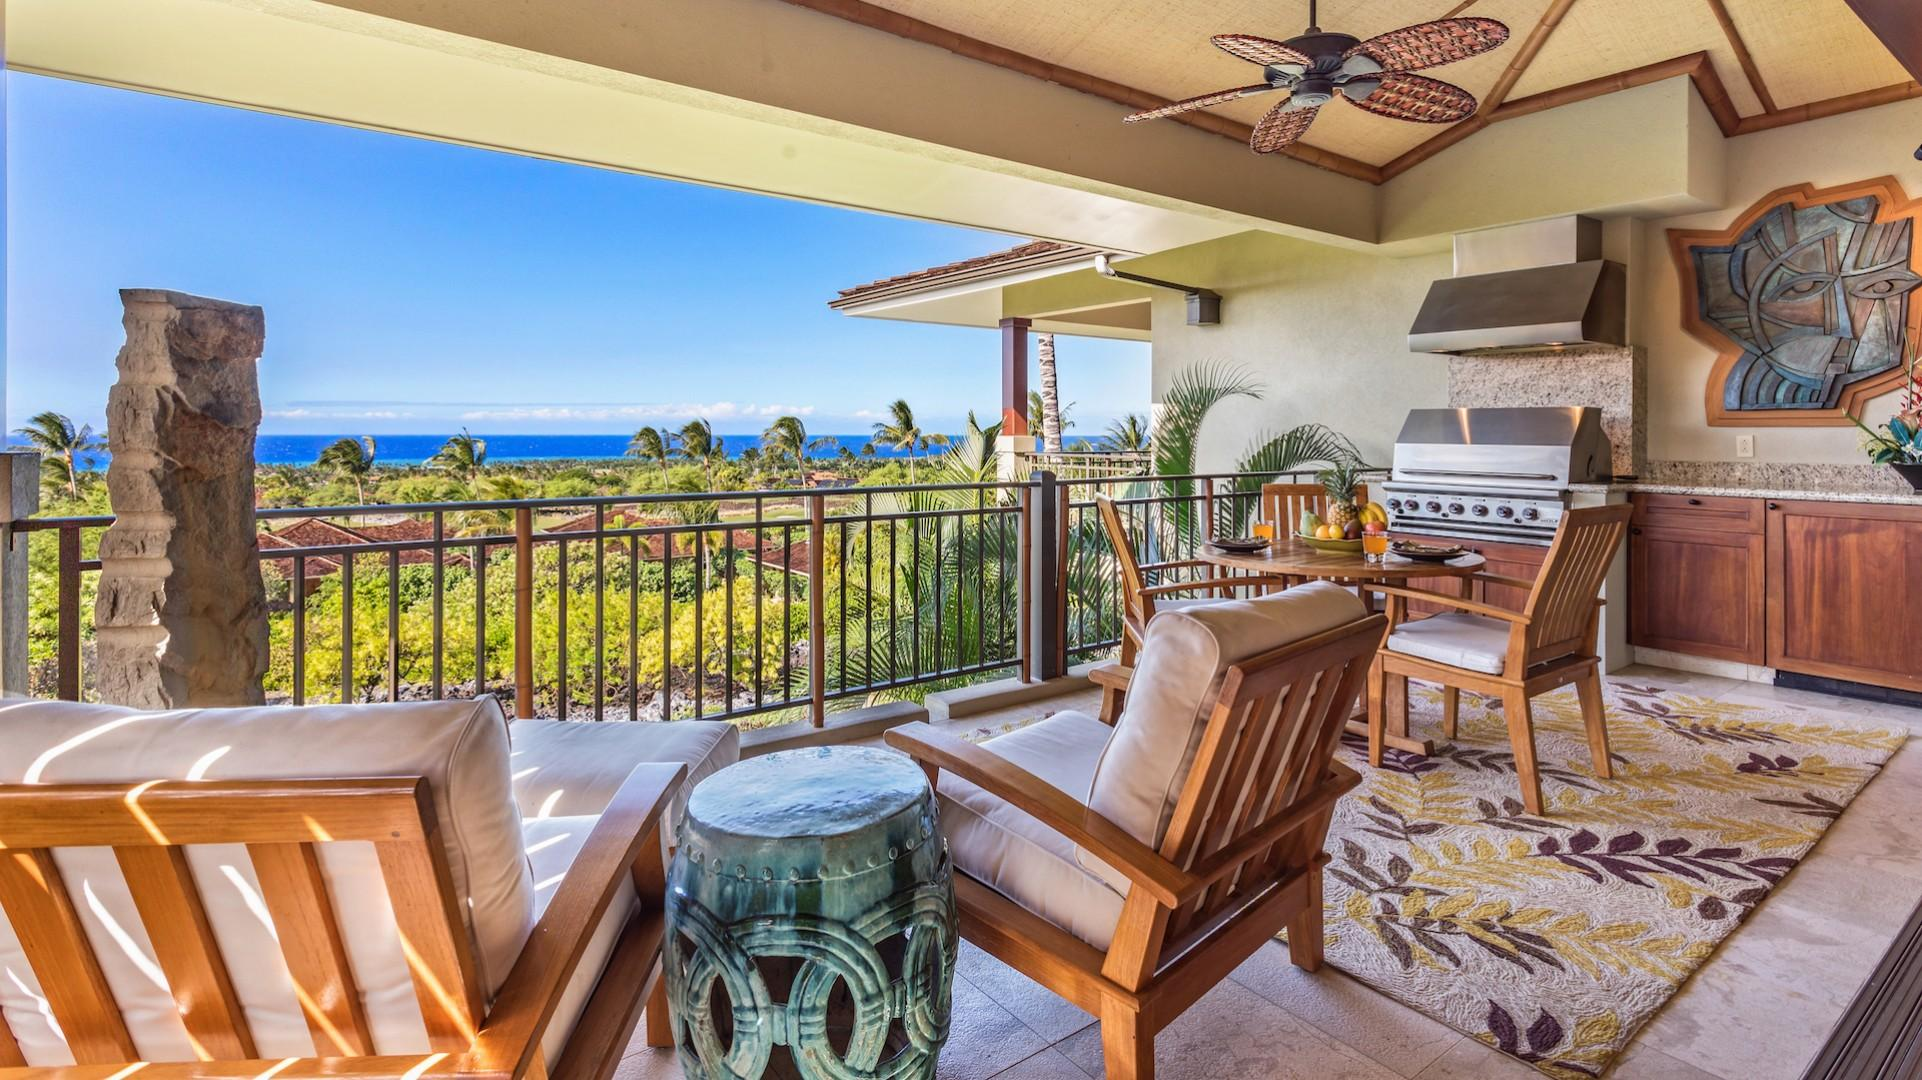 Ocean & Sunset Views from the Generous Lanai with Plush Chairs, Dining Area & BBQ Grill.